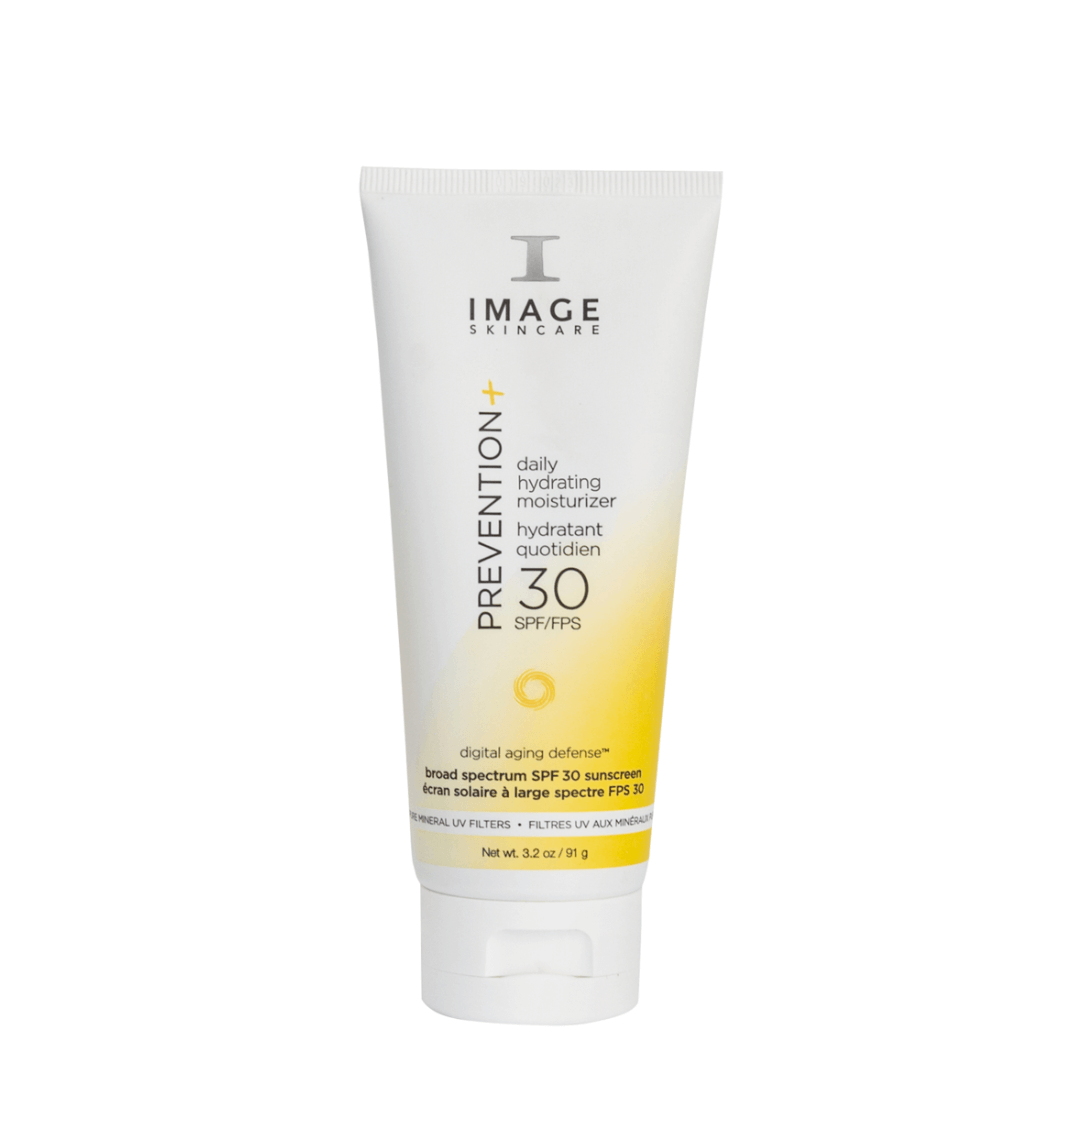 image skincare prevention + hydrating spf 30